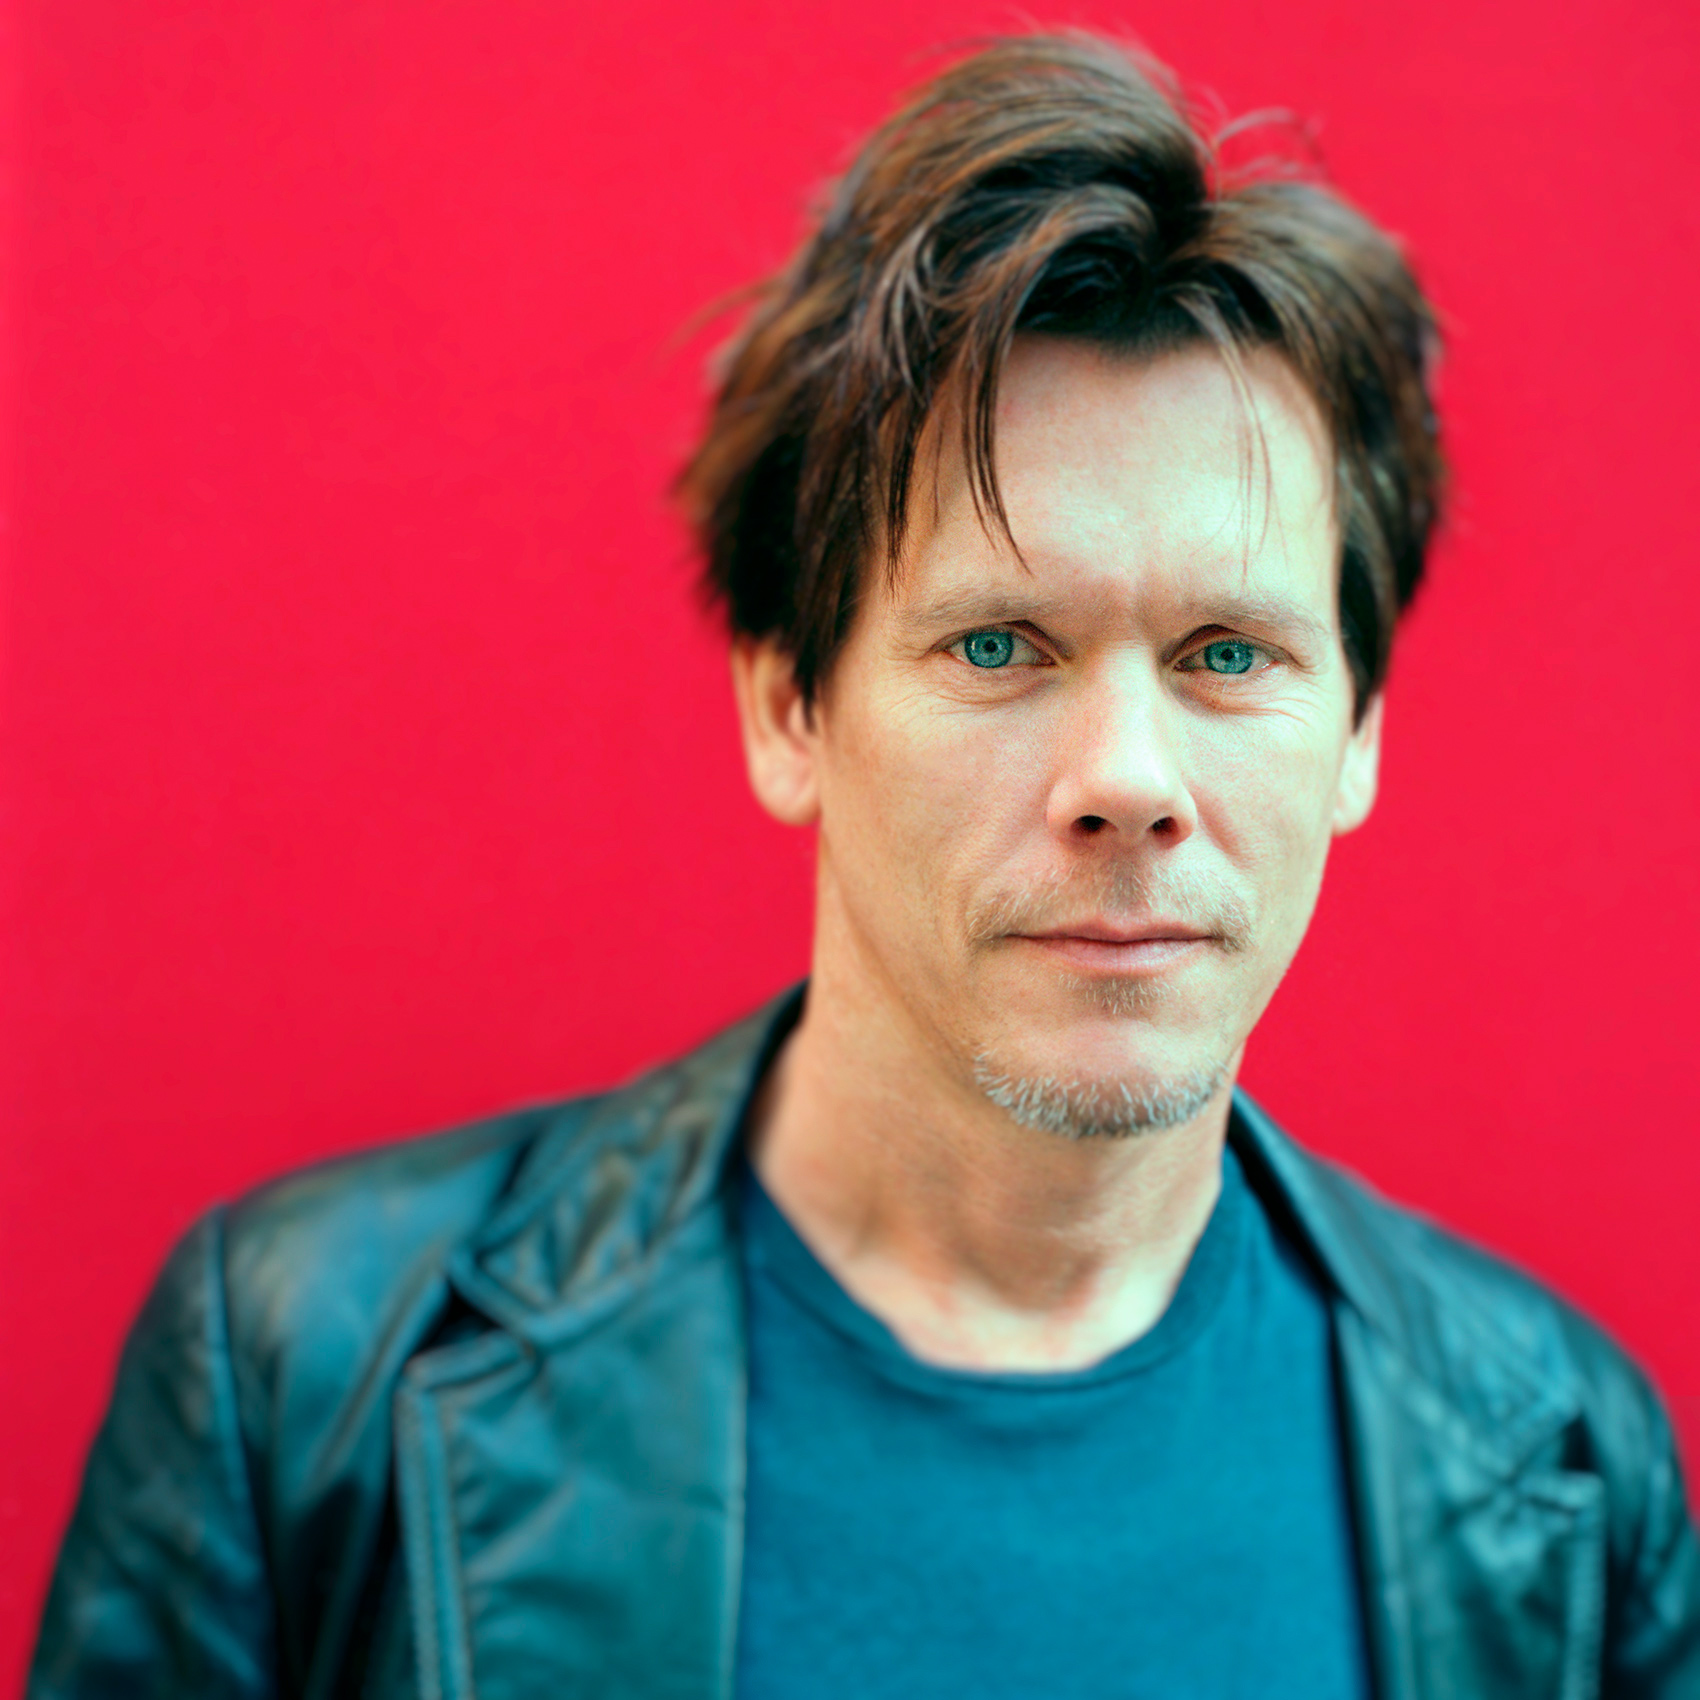 kevin-bacon-poses-for-toronto-celebrity-photographer-john-hryniuk-at-tiff